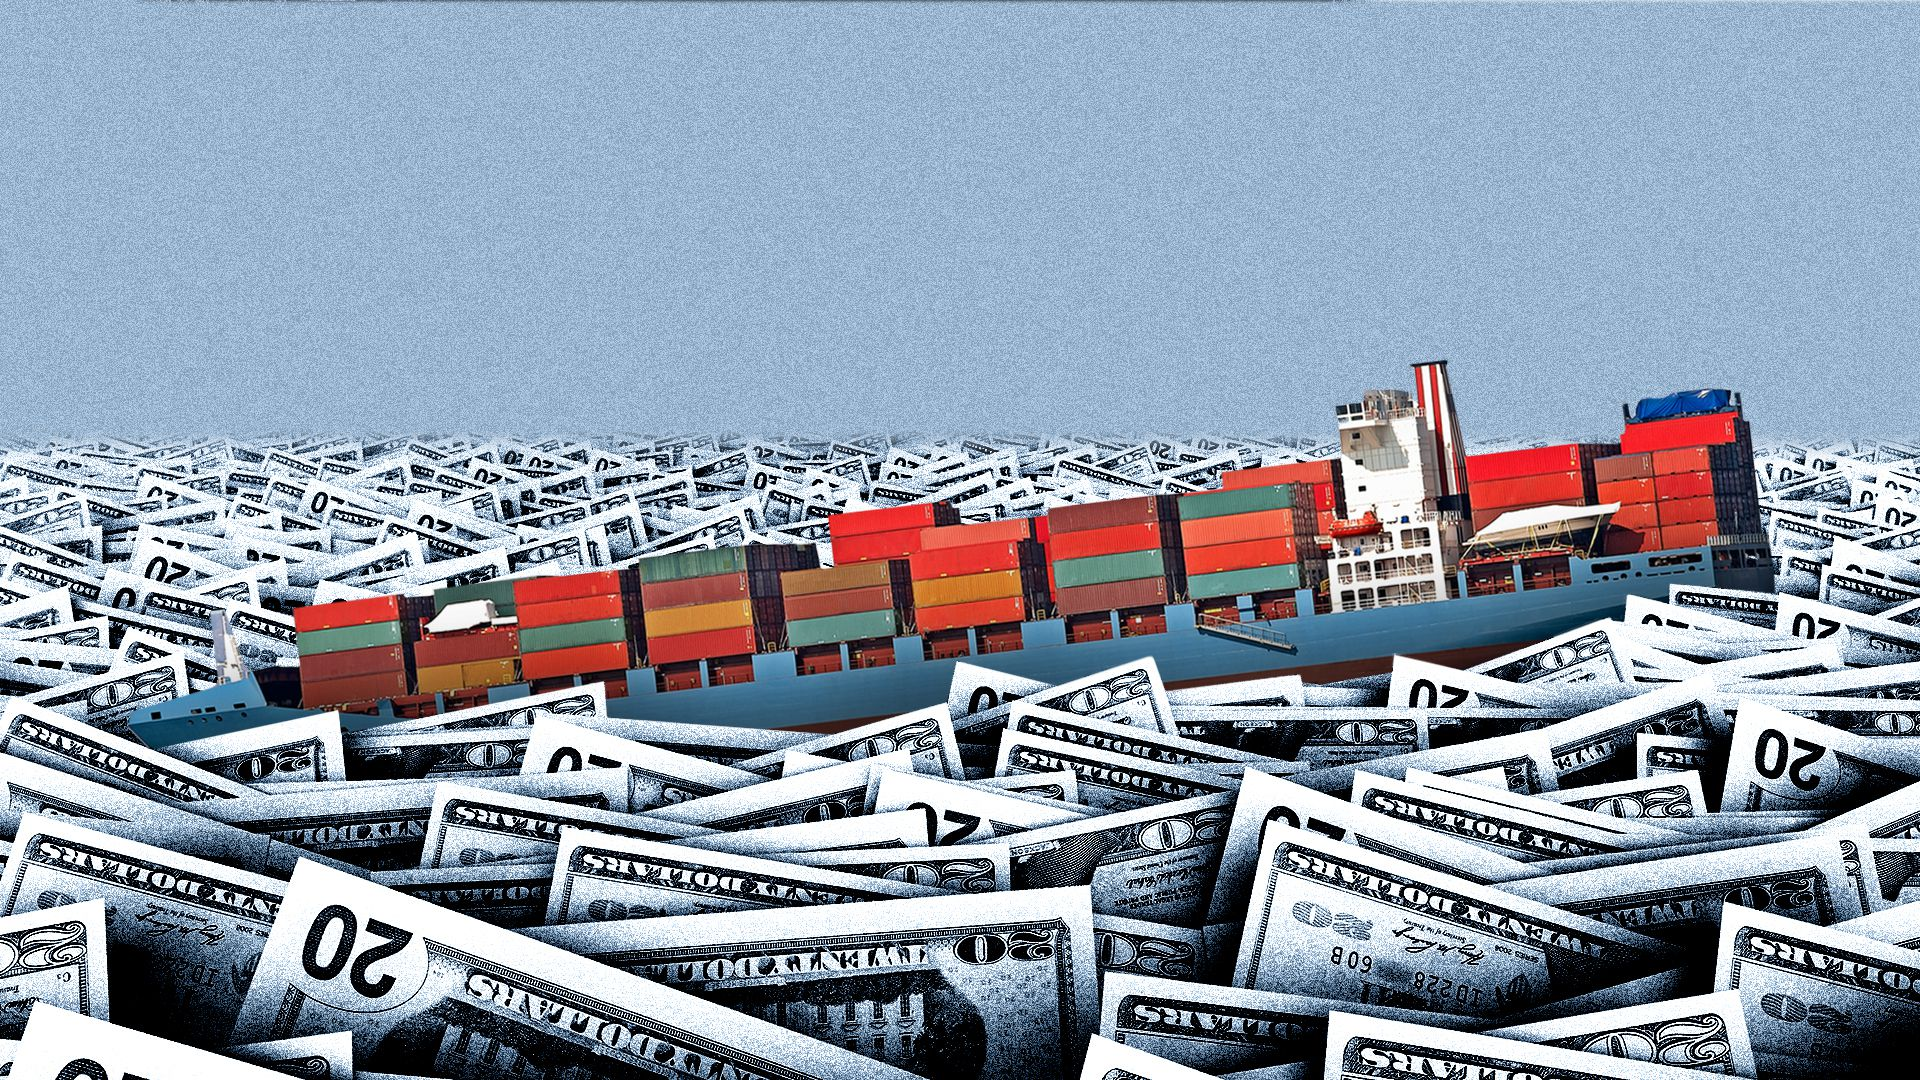 Illustration of giant cargo ship being drowned in sea of U.S. dollars